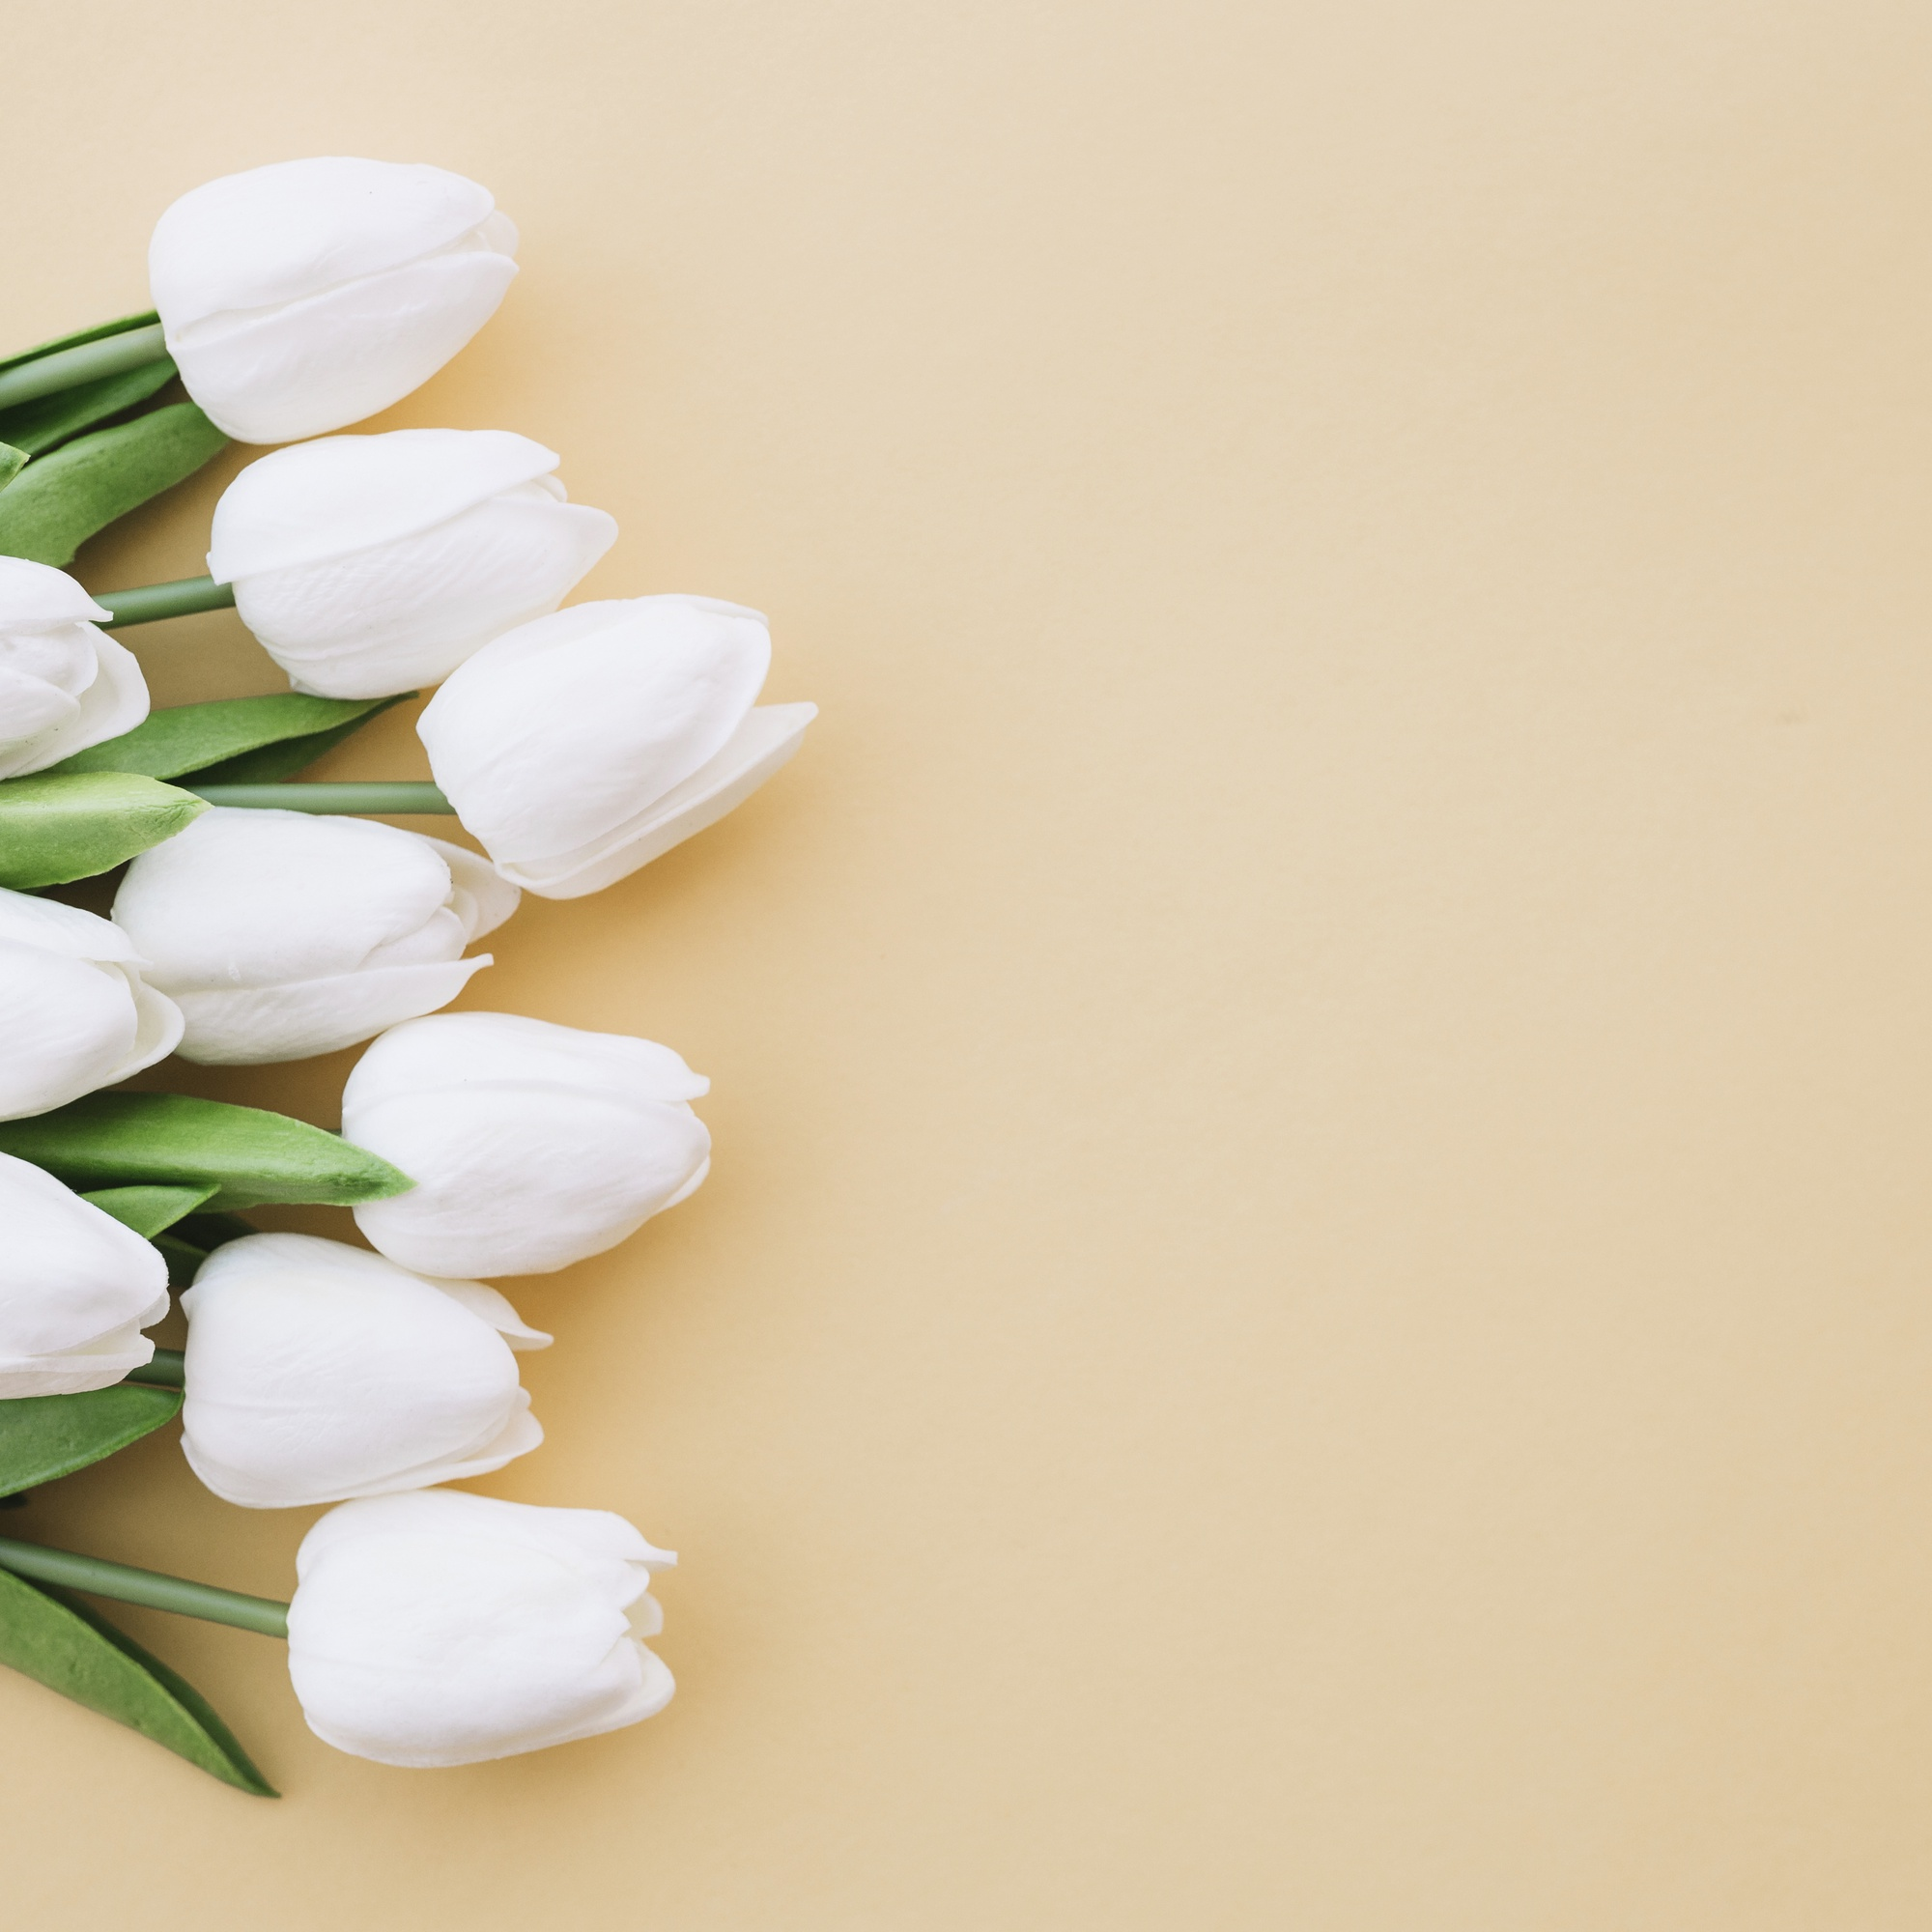 Nice tulips on yellow background with space on the right